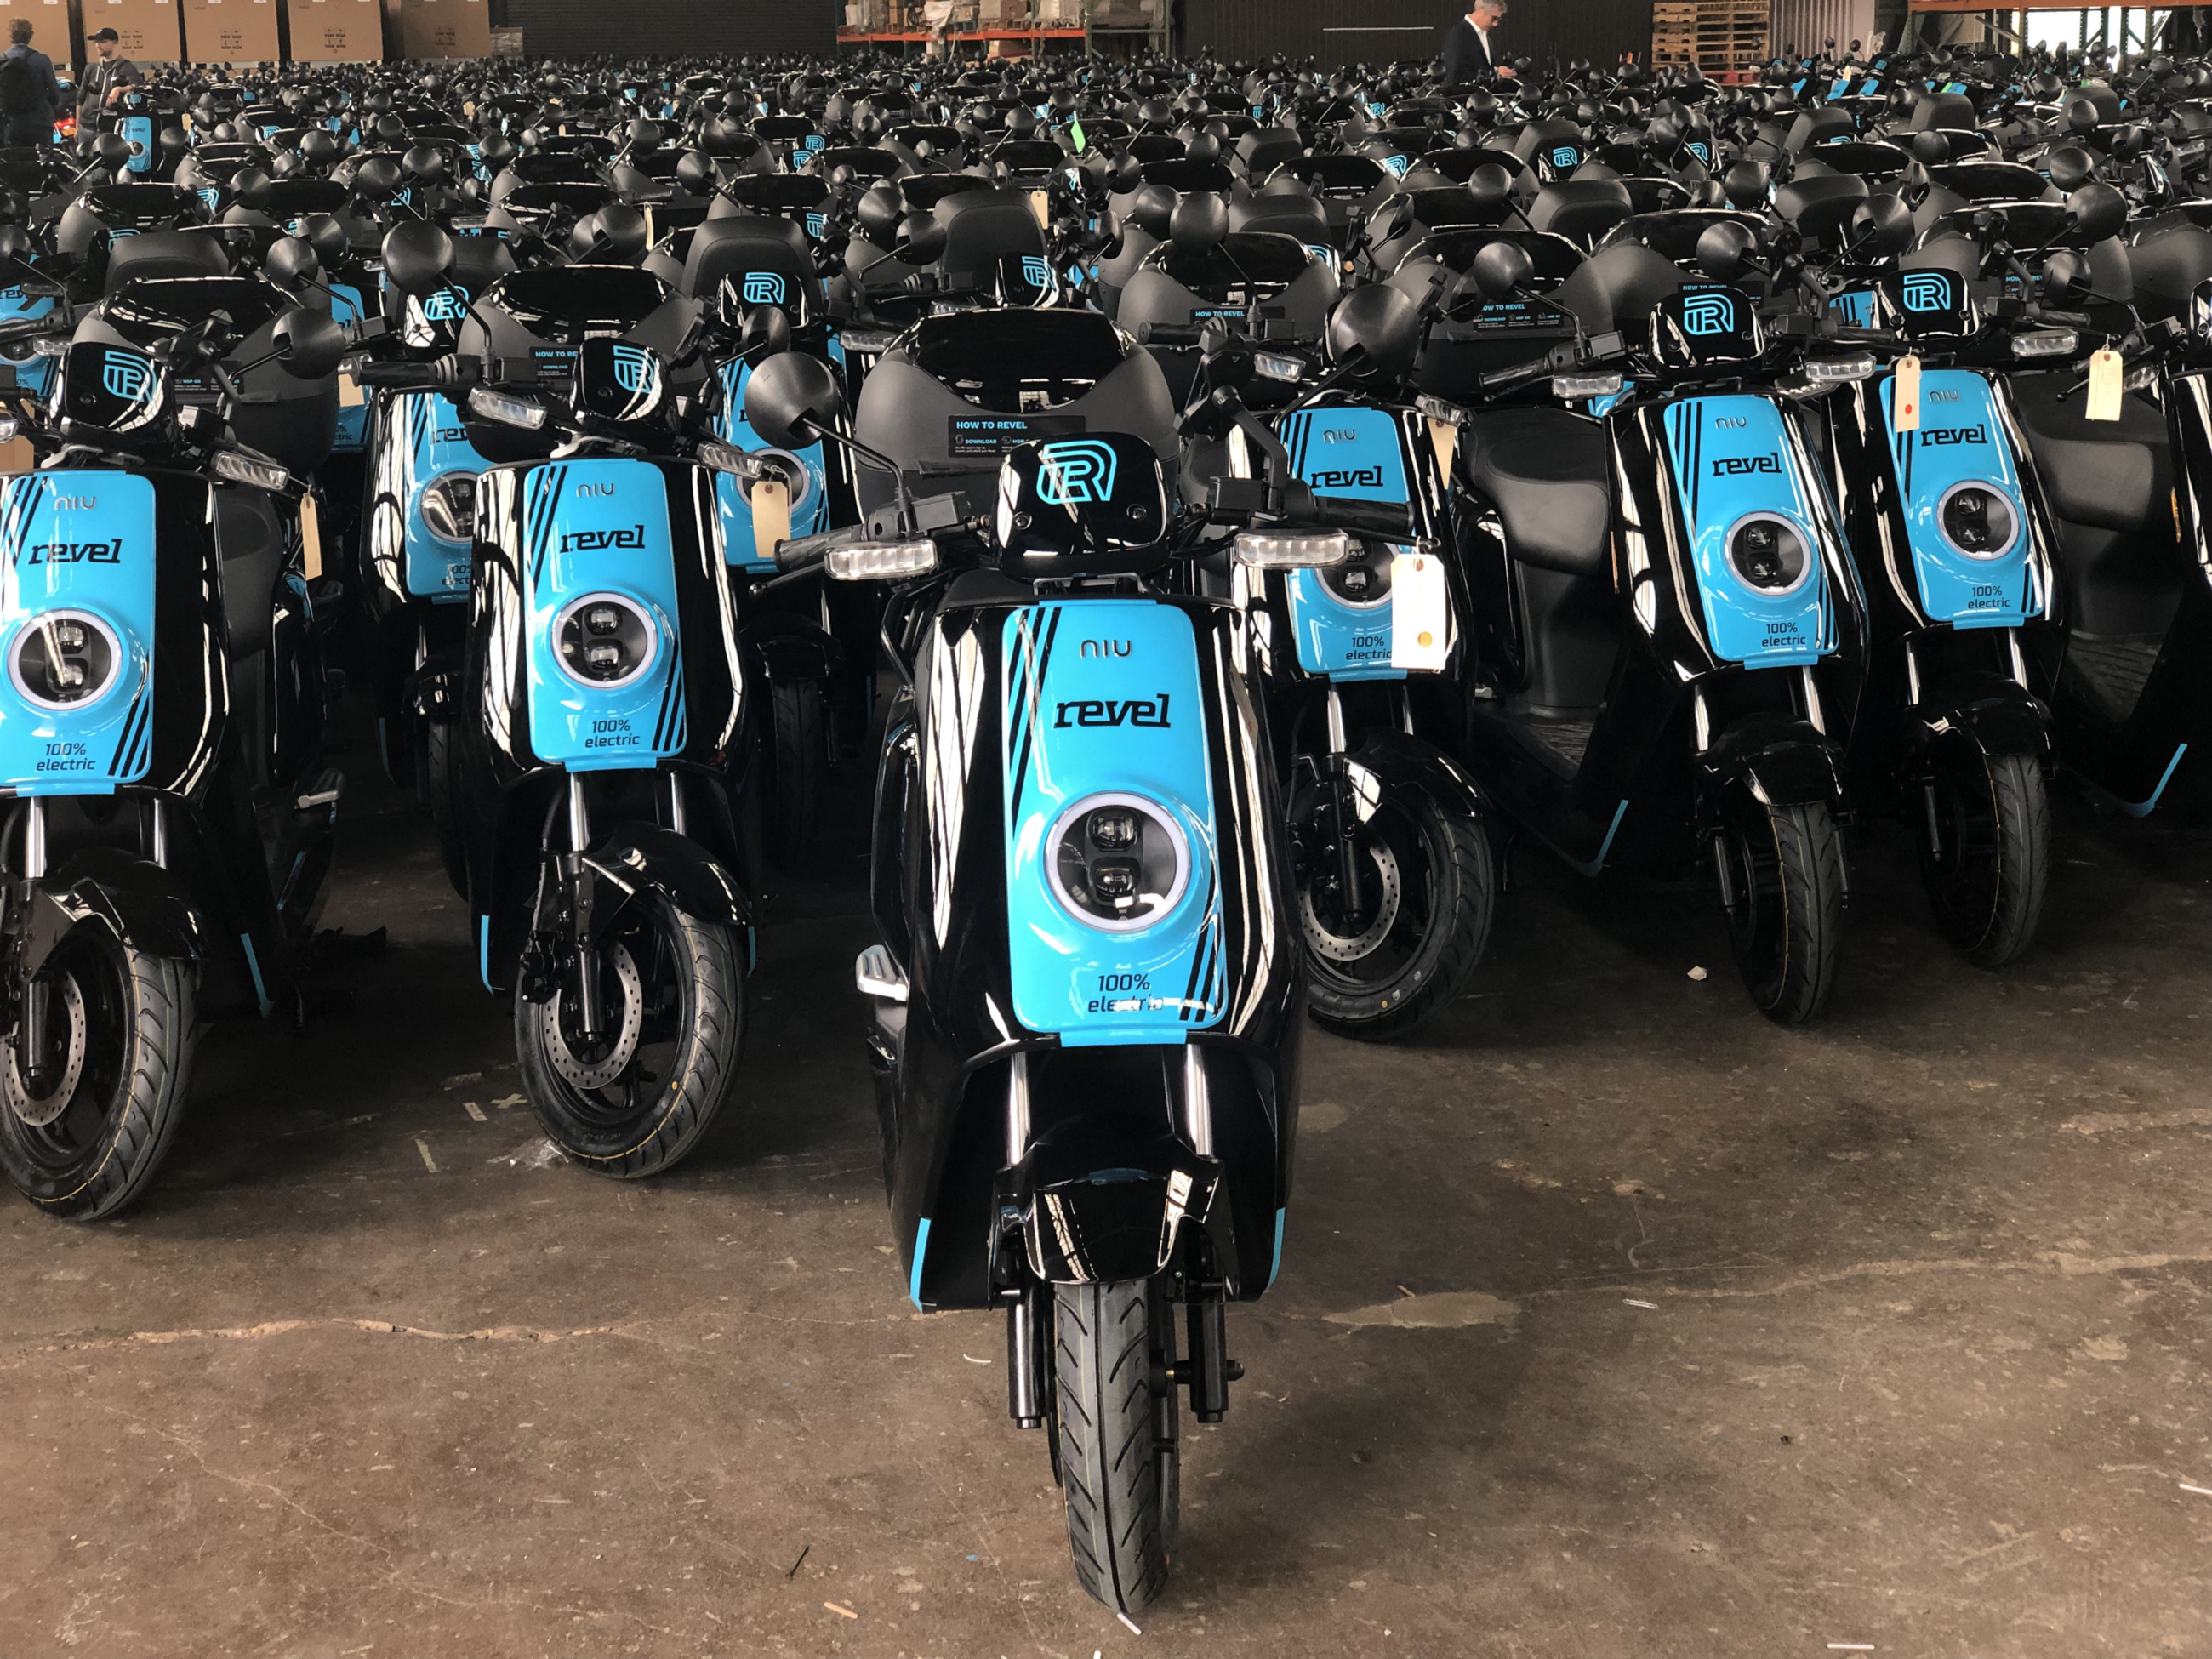 Maniv is Reveling in Micromobility